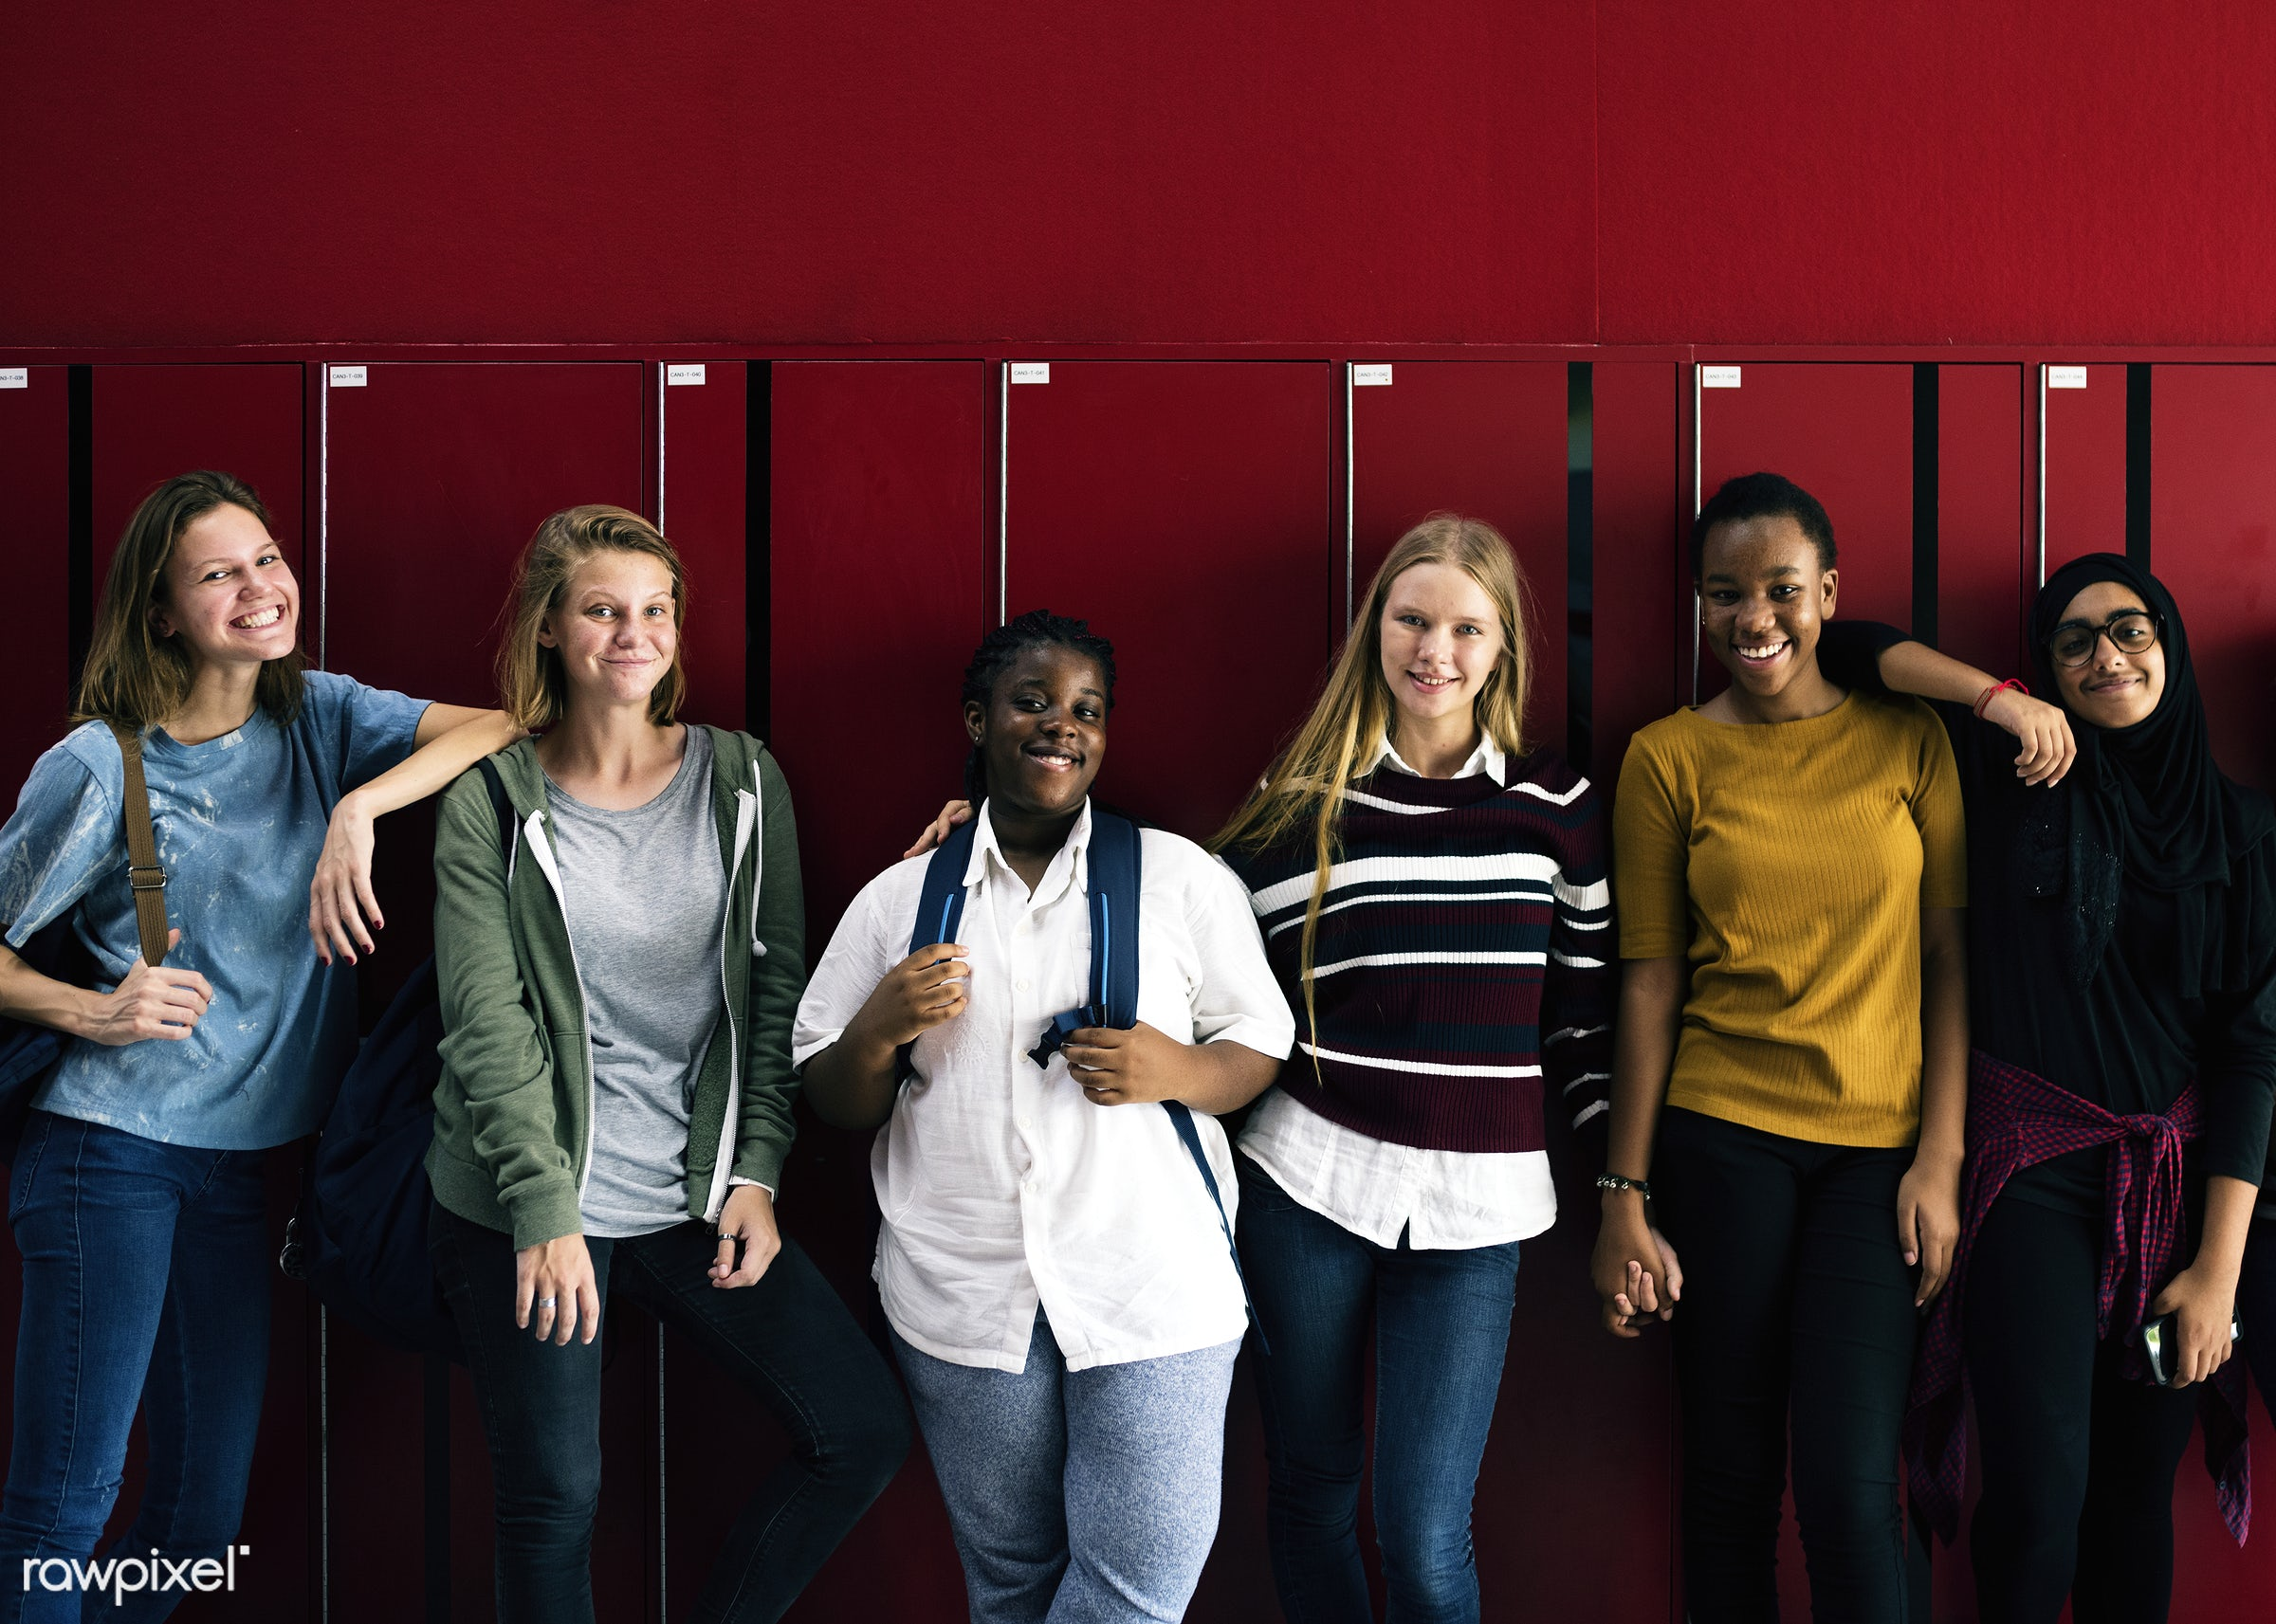 discussion, education, positivity, caucasian, academic, asian, girl, friends, lifestyle, casual, smiling, lockers, students...